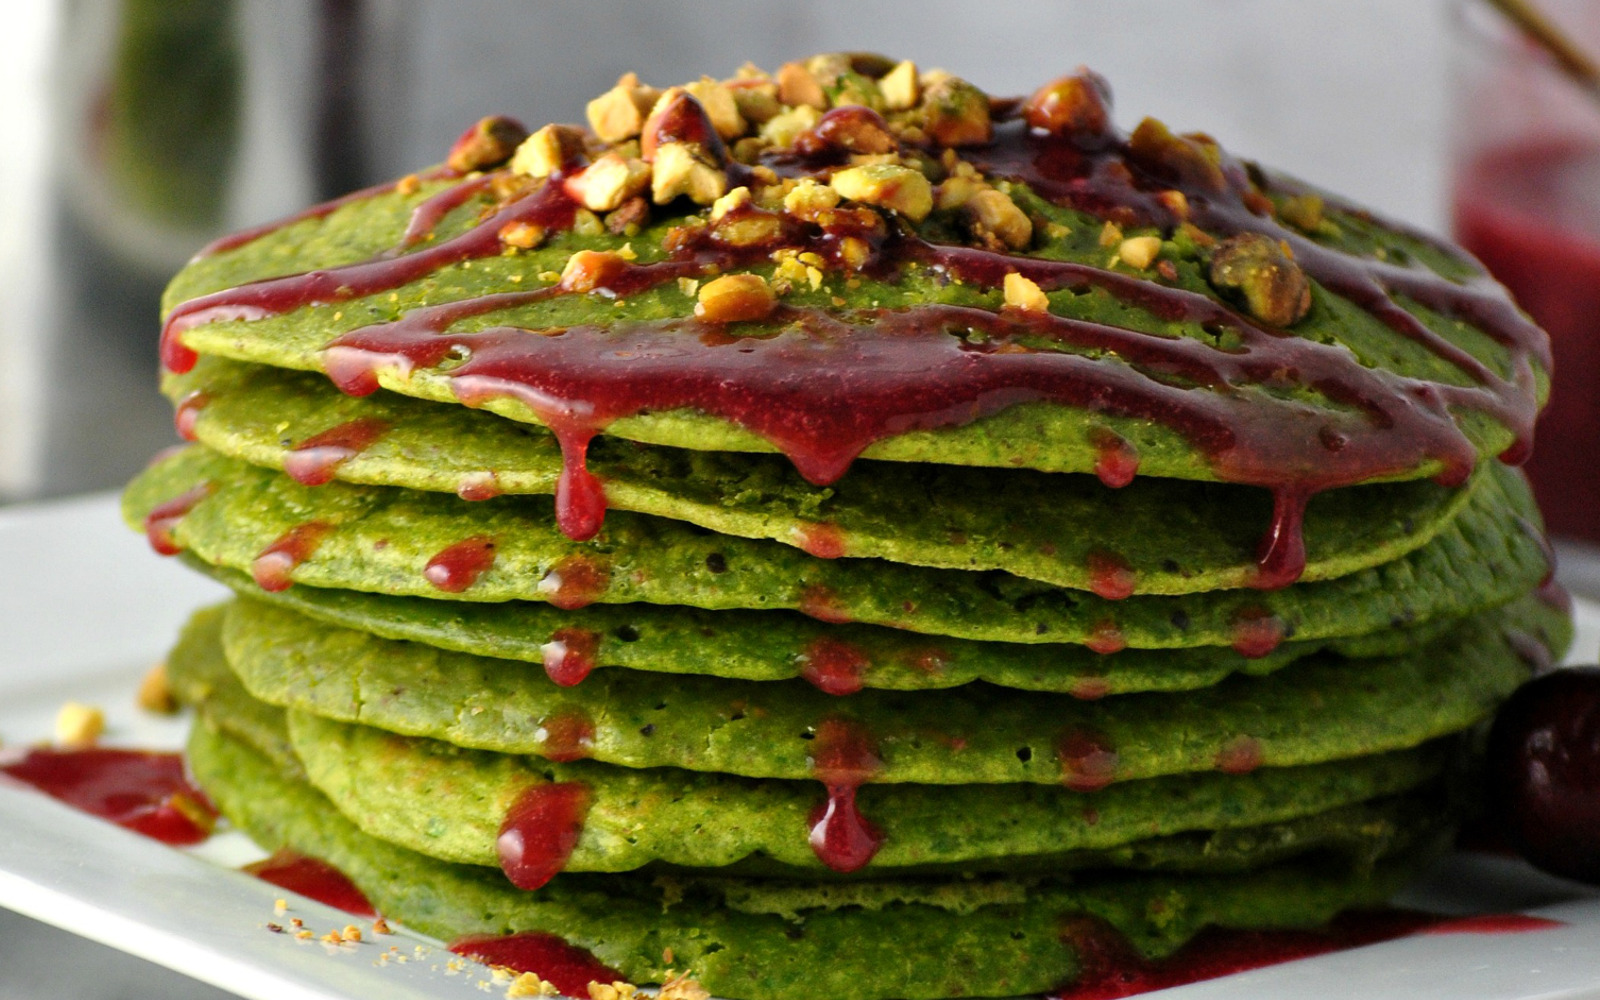 Pistachio Pancakes With Blueberry Syrup